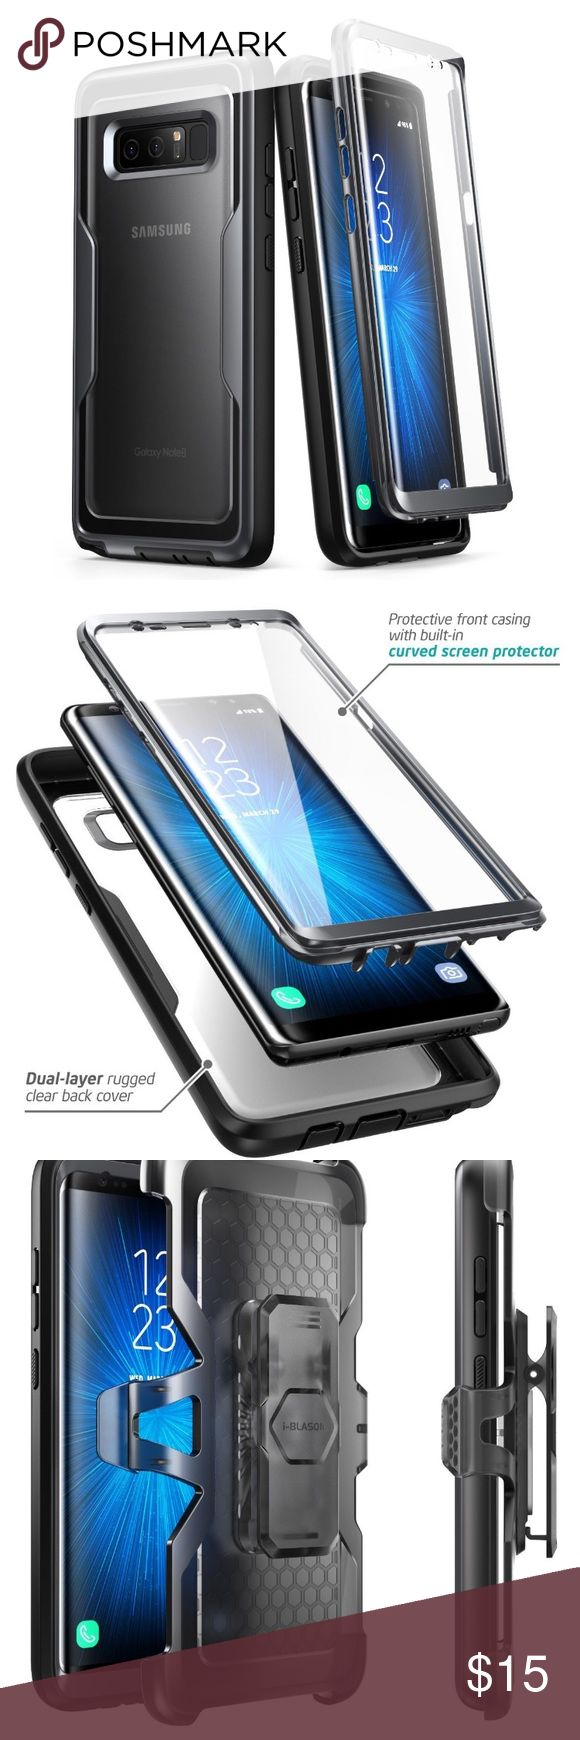 NIB I-Blason Galaxy Note 8 case Brand new in box. i-Blason Galaxy Note 8 Case, [Heavy Duty Protection] [Clear Back] [Magma Series] Shock Reduction / Full body Bumper Case with Built-in Screen Protector for Samsung Galaxy Note 8 2017 (Black) Accessories Phone Cases